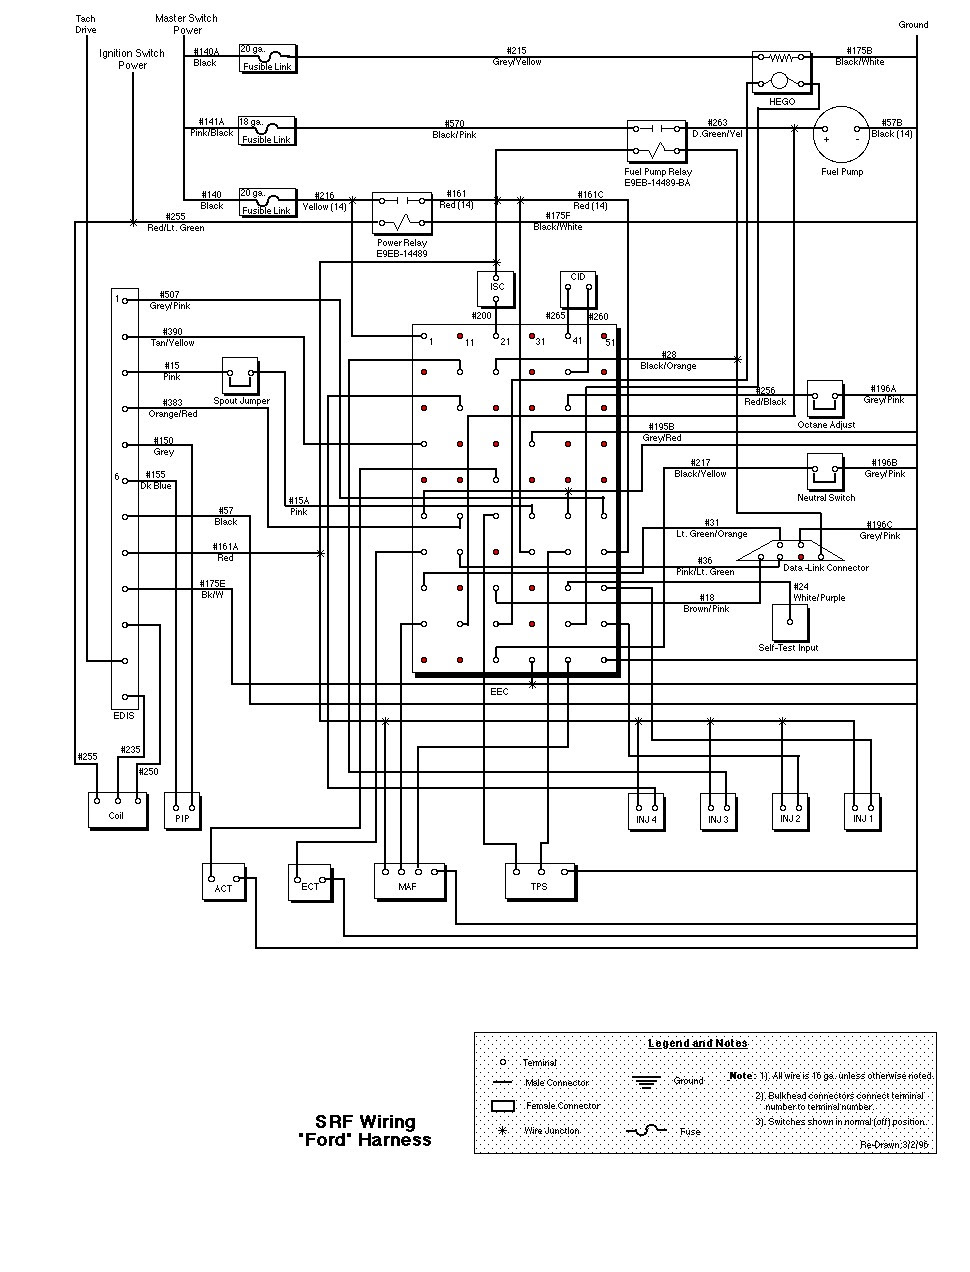 Ford Lt9000 Starter Wiring Wiring Diagram Complete Complete Lionsclubviterbo It